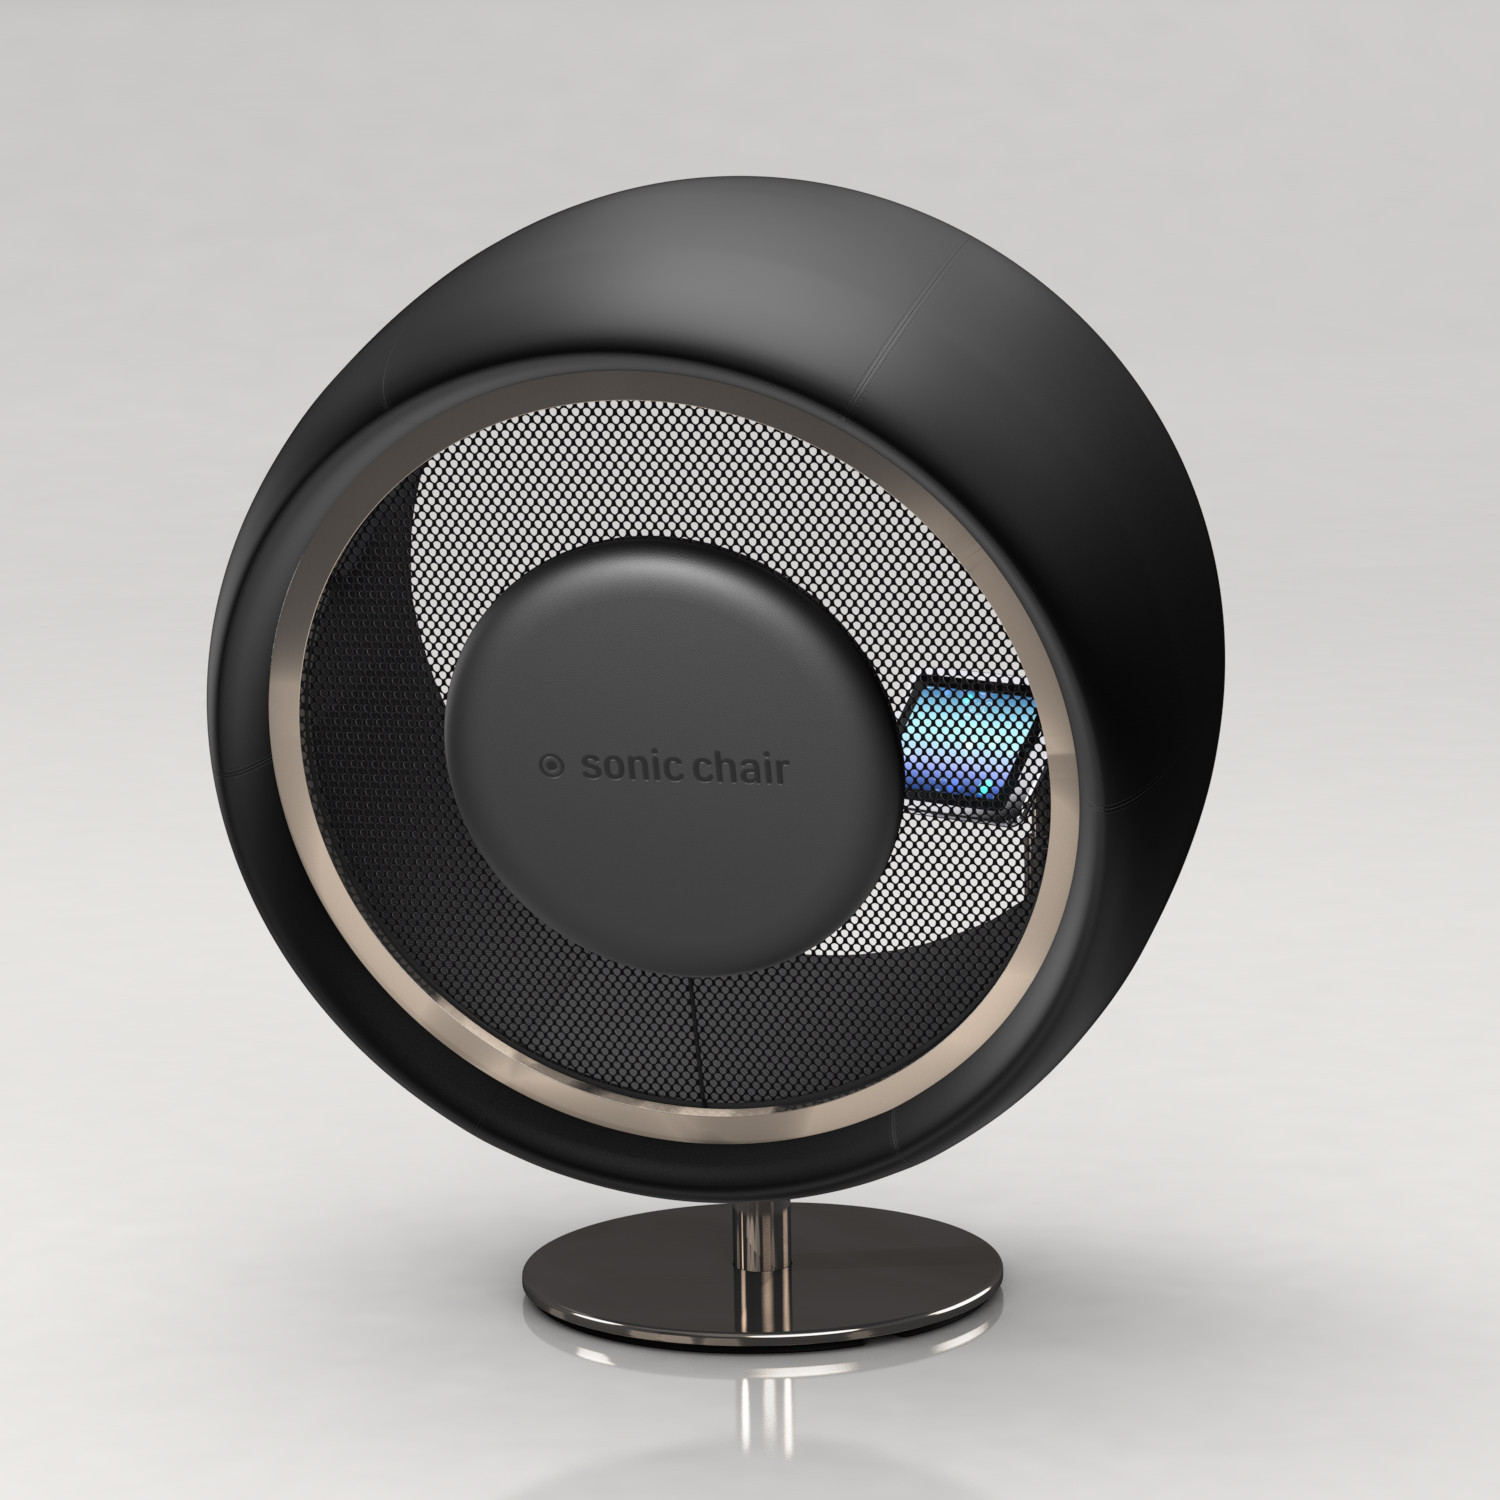 Sonic Chair special edition sonic chair black sonic chair touch of modern